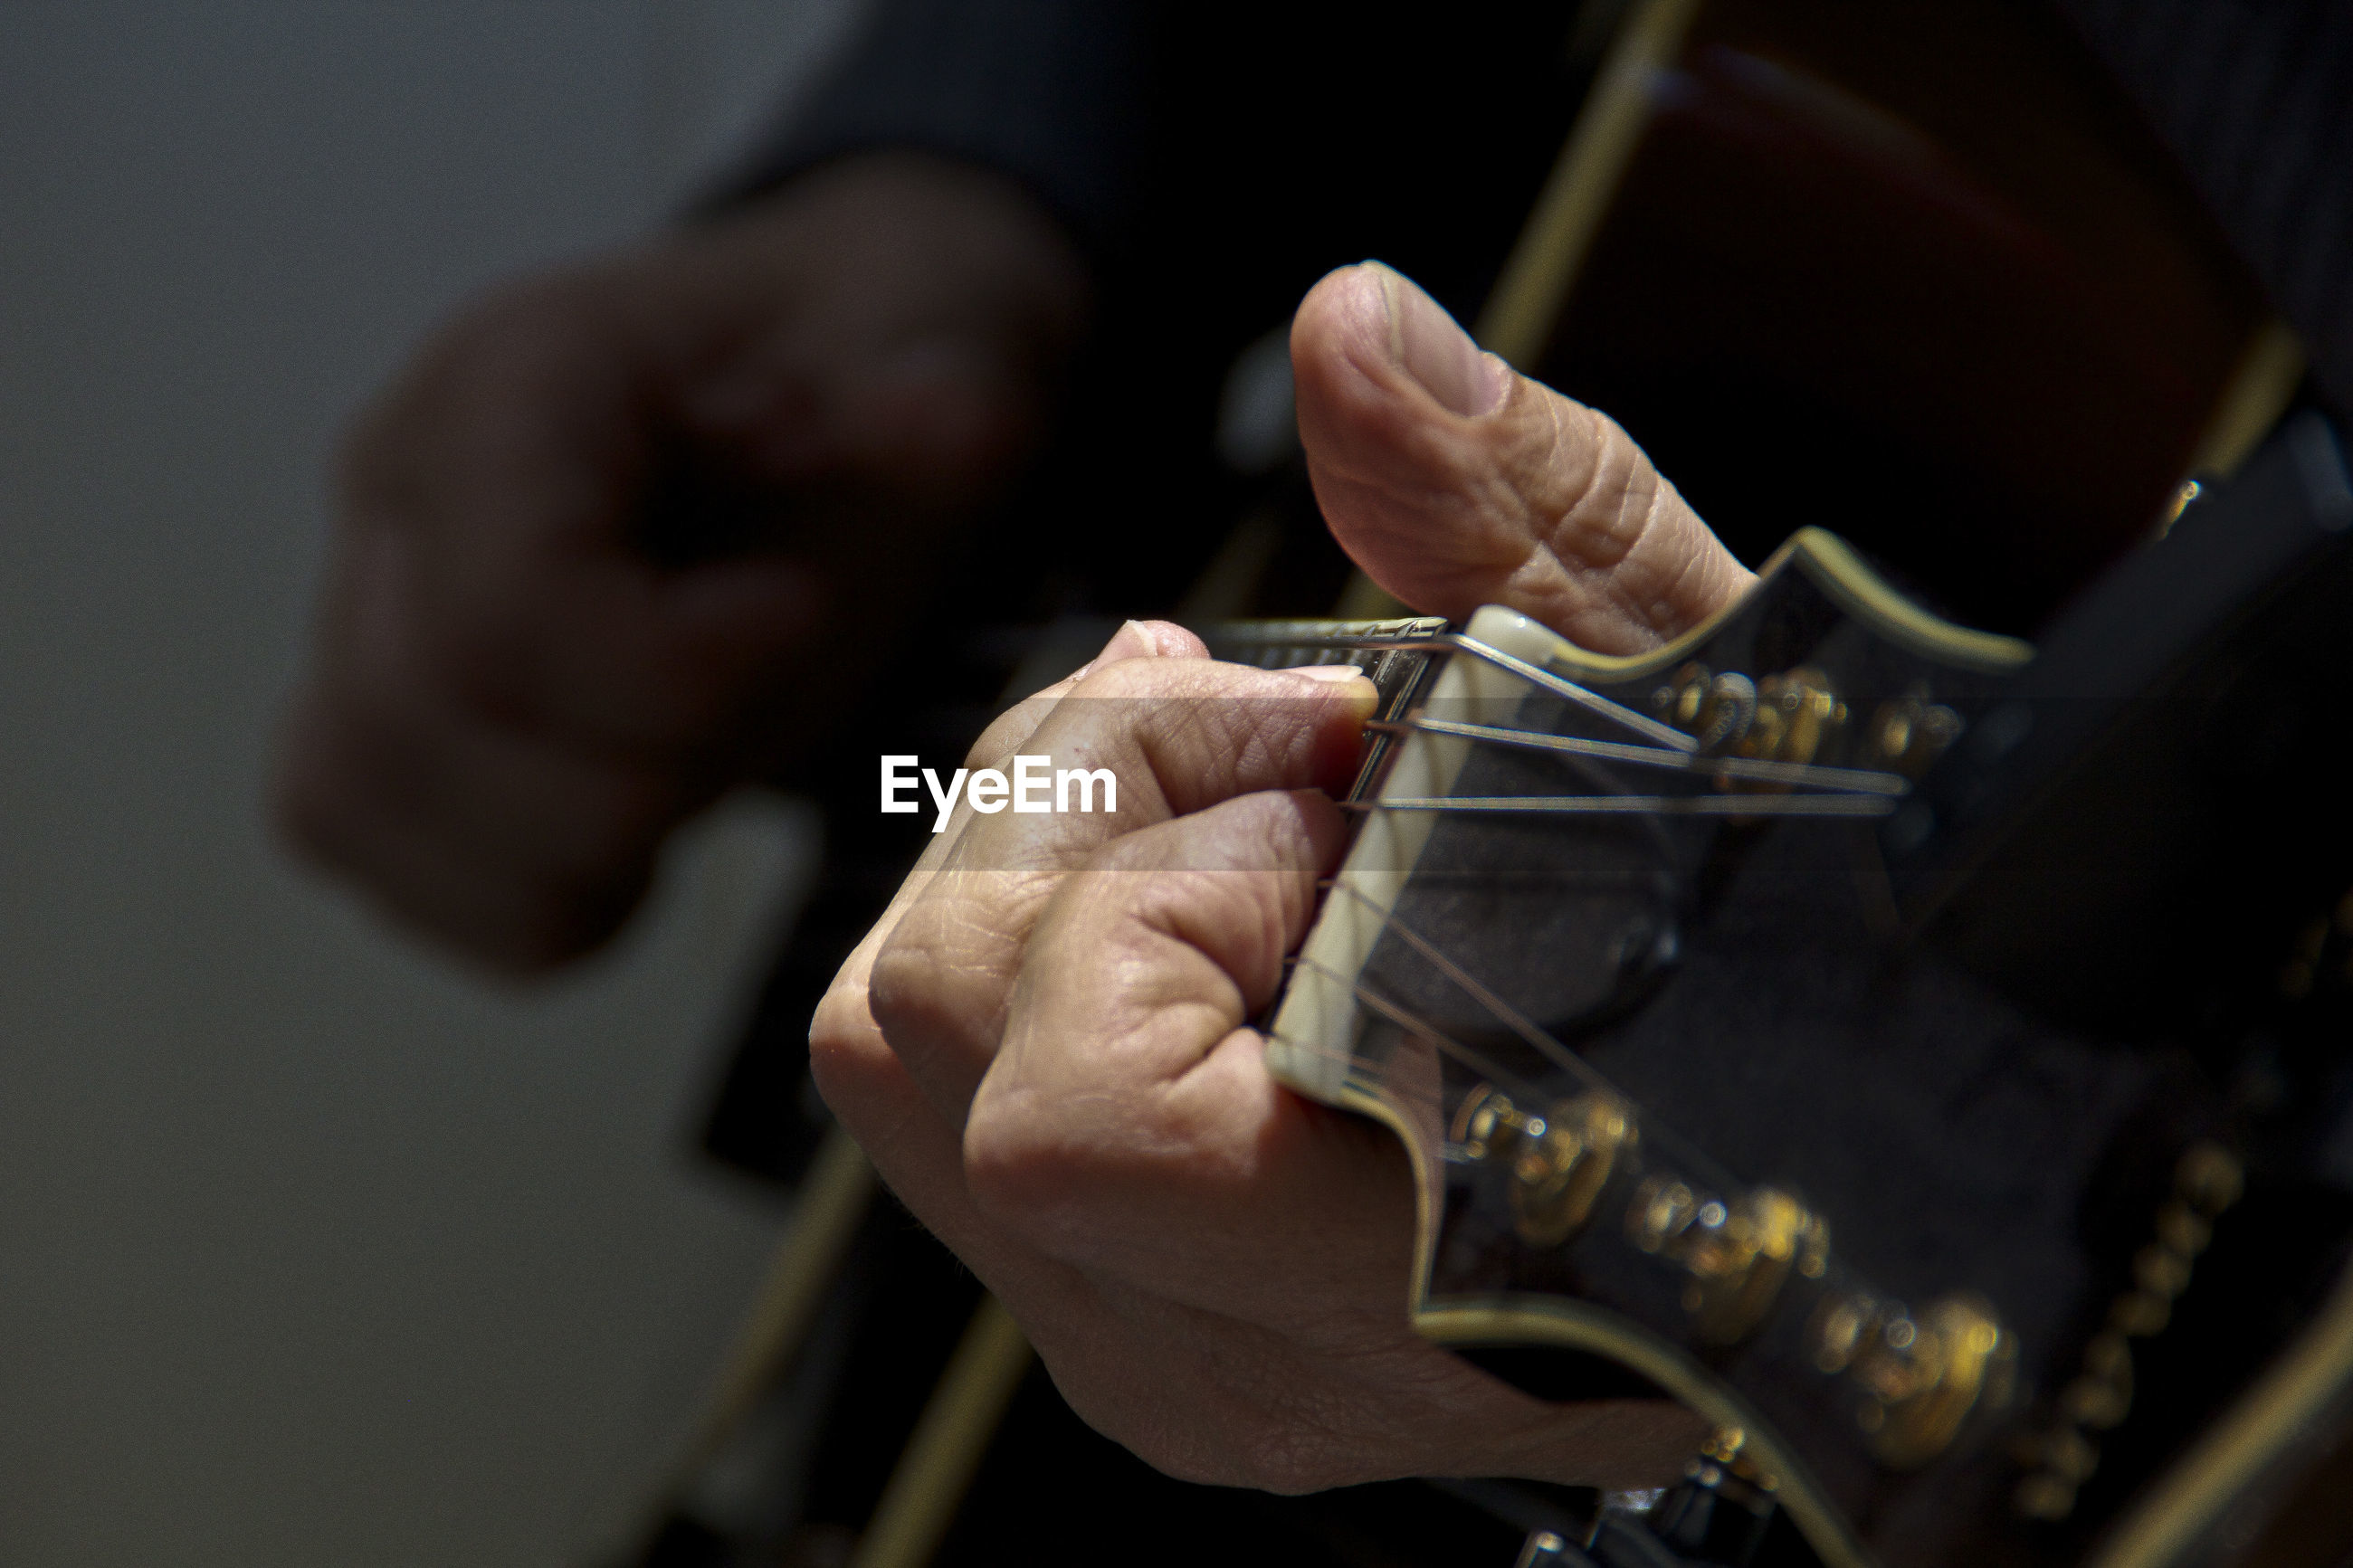 Midsection of guitarist playing guitar